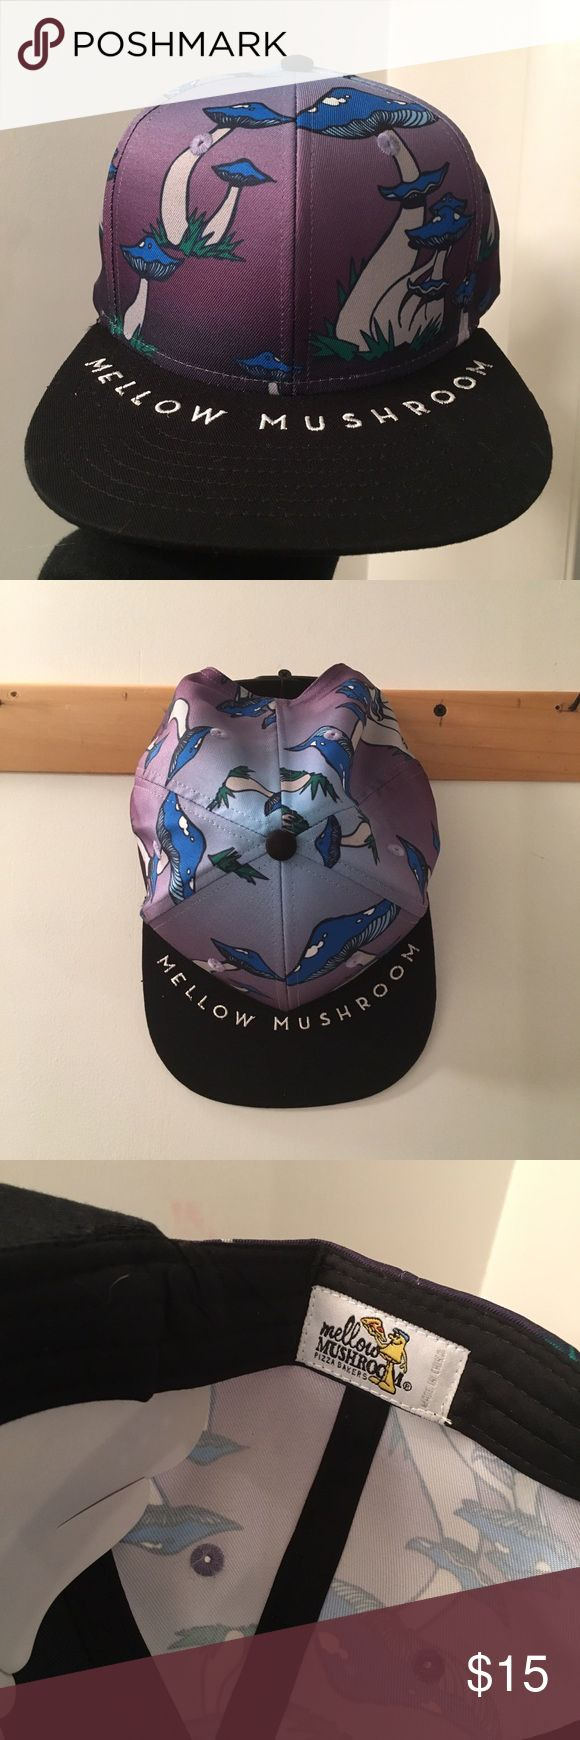 Mellow Mushroom SnapBack Never worn. Brand new. Super cute. From the Mellow Mushroom pizza company. $22.95 not including shipping on their website. Accessories Hats